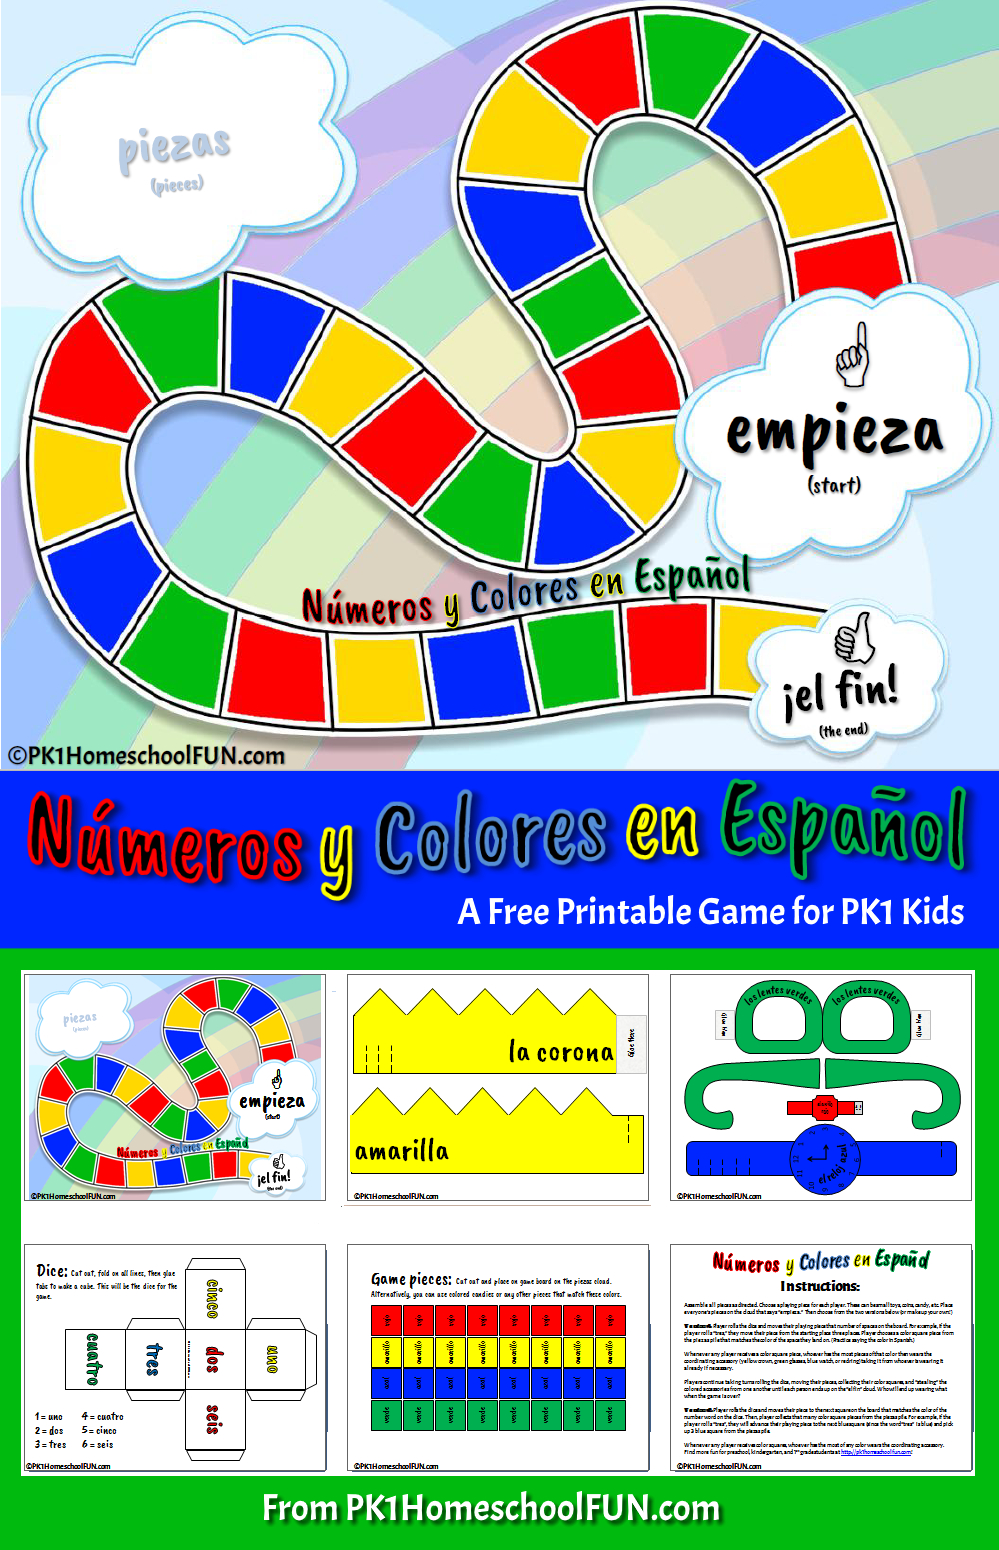 Free Printable Spanish Numbers & Colors Game - Pk1Homeschoolfun - Free Printable Spanish Numbers